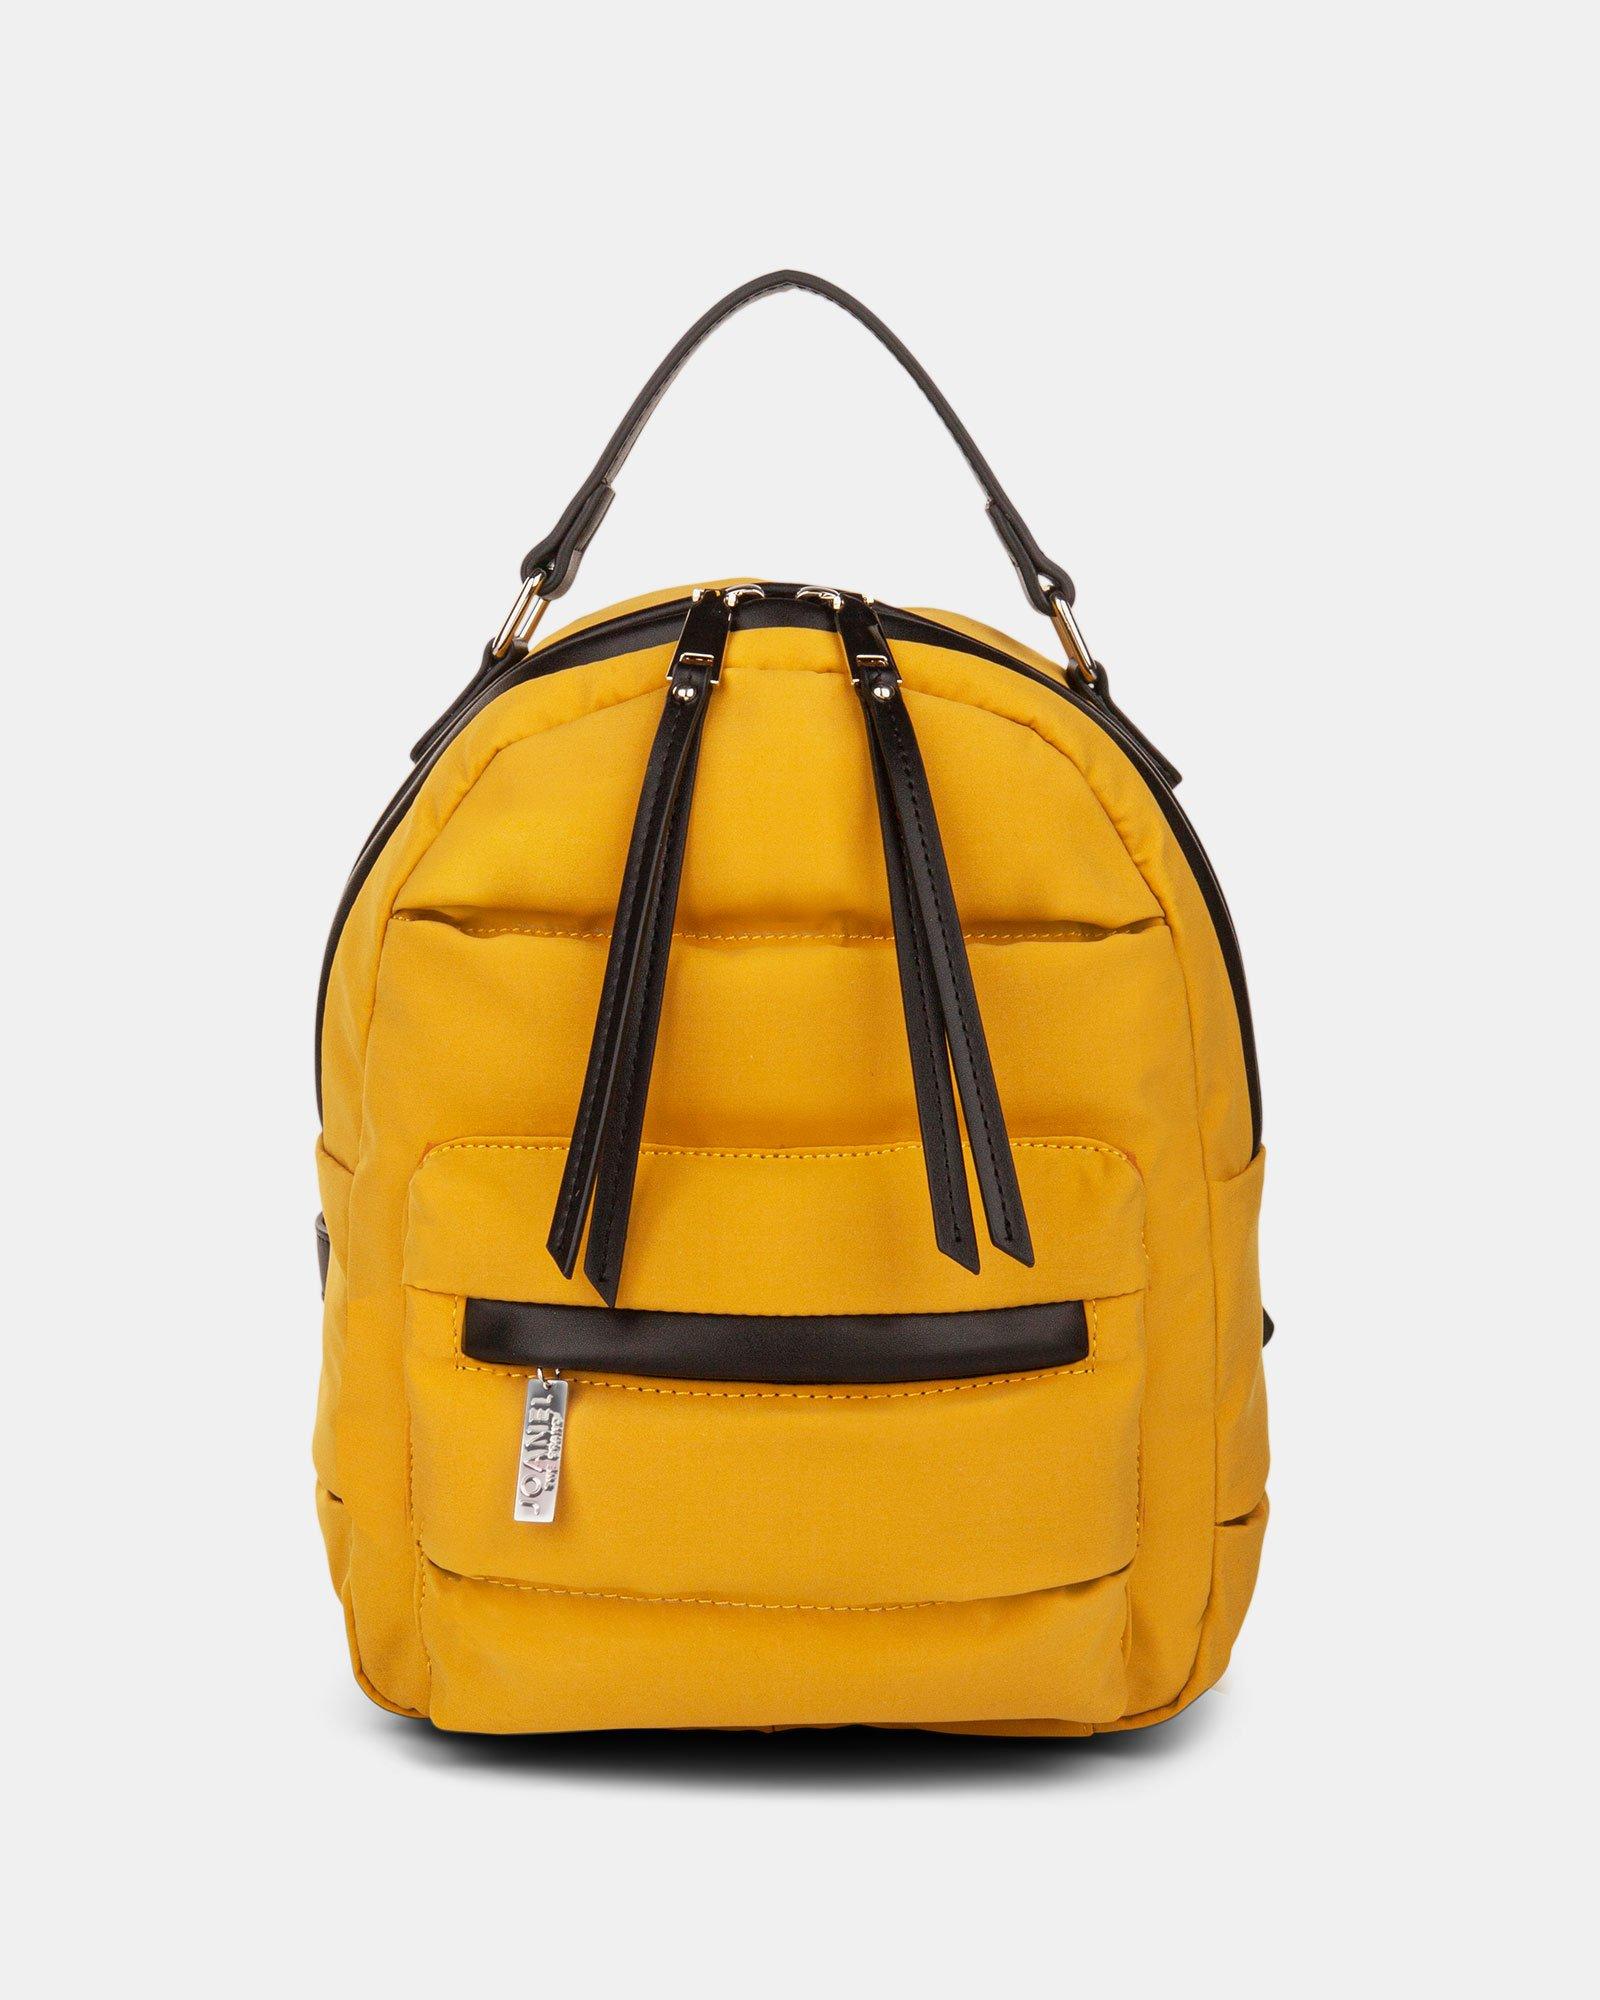 Hi Cloud - Quilted Nylon Backpack with Main zippered compartment - Mustard - Joanel - Zoom